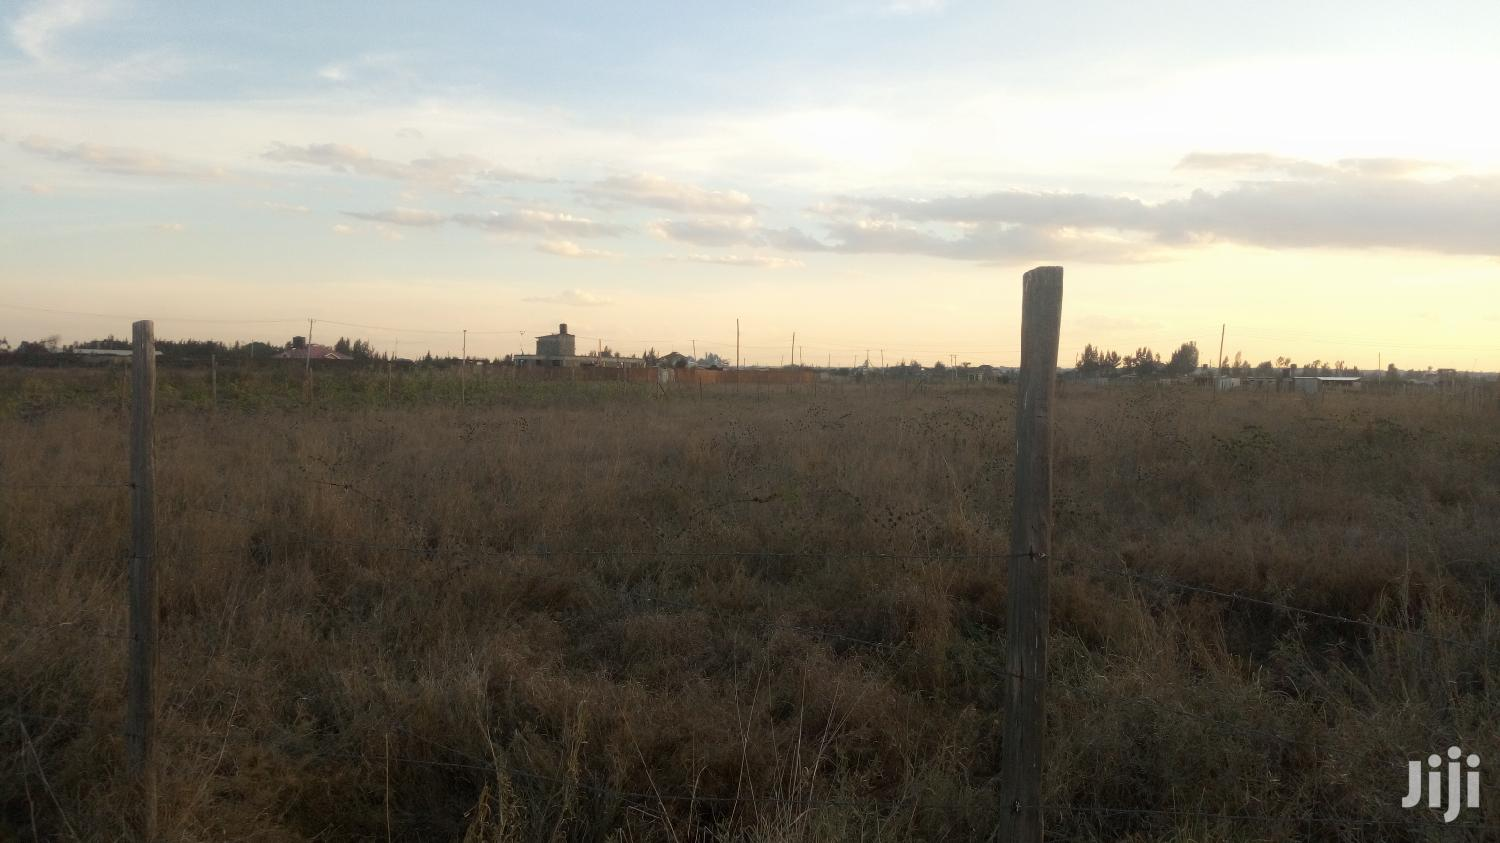 A 1/2 Acre Plot in Ruai With a Clean Title